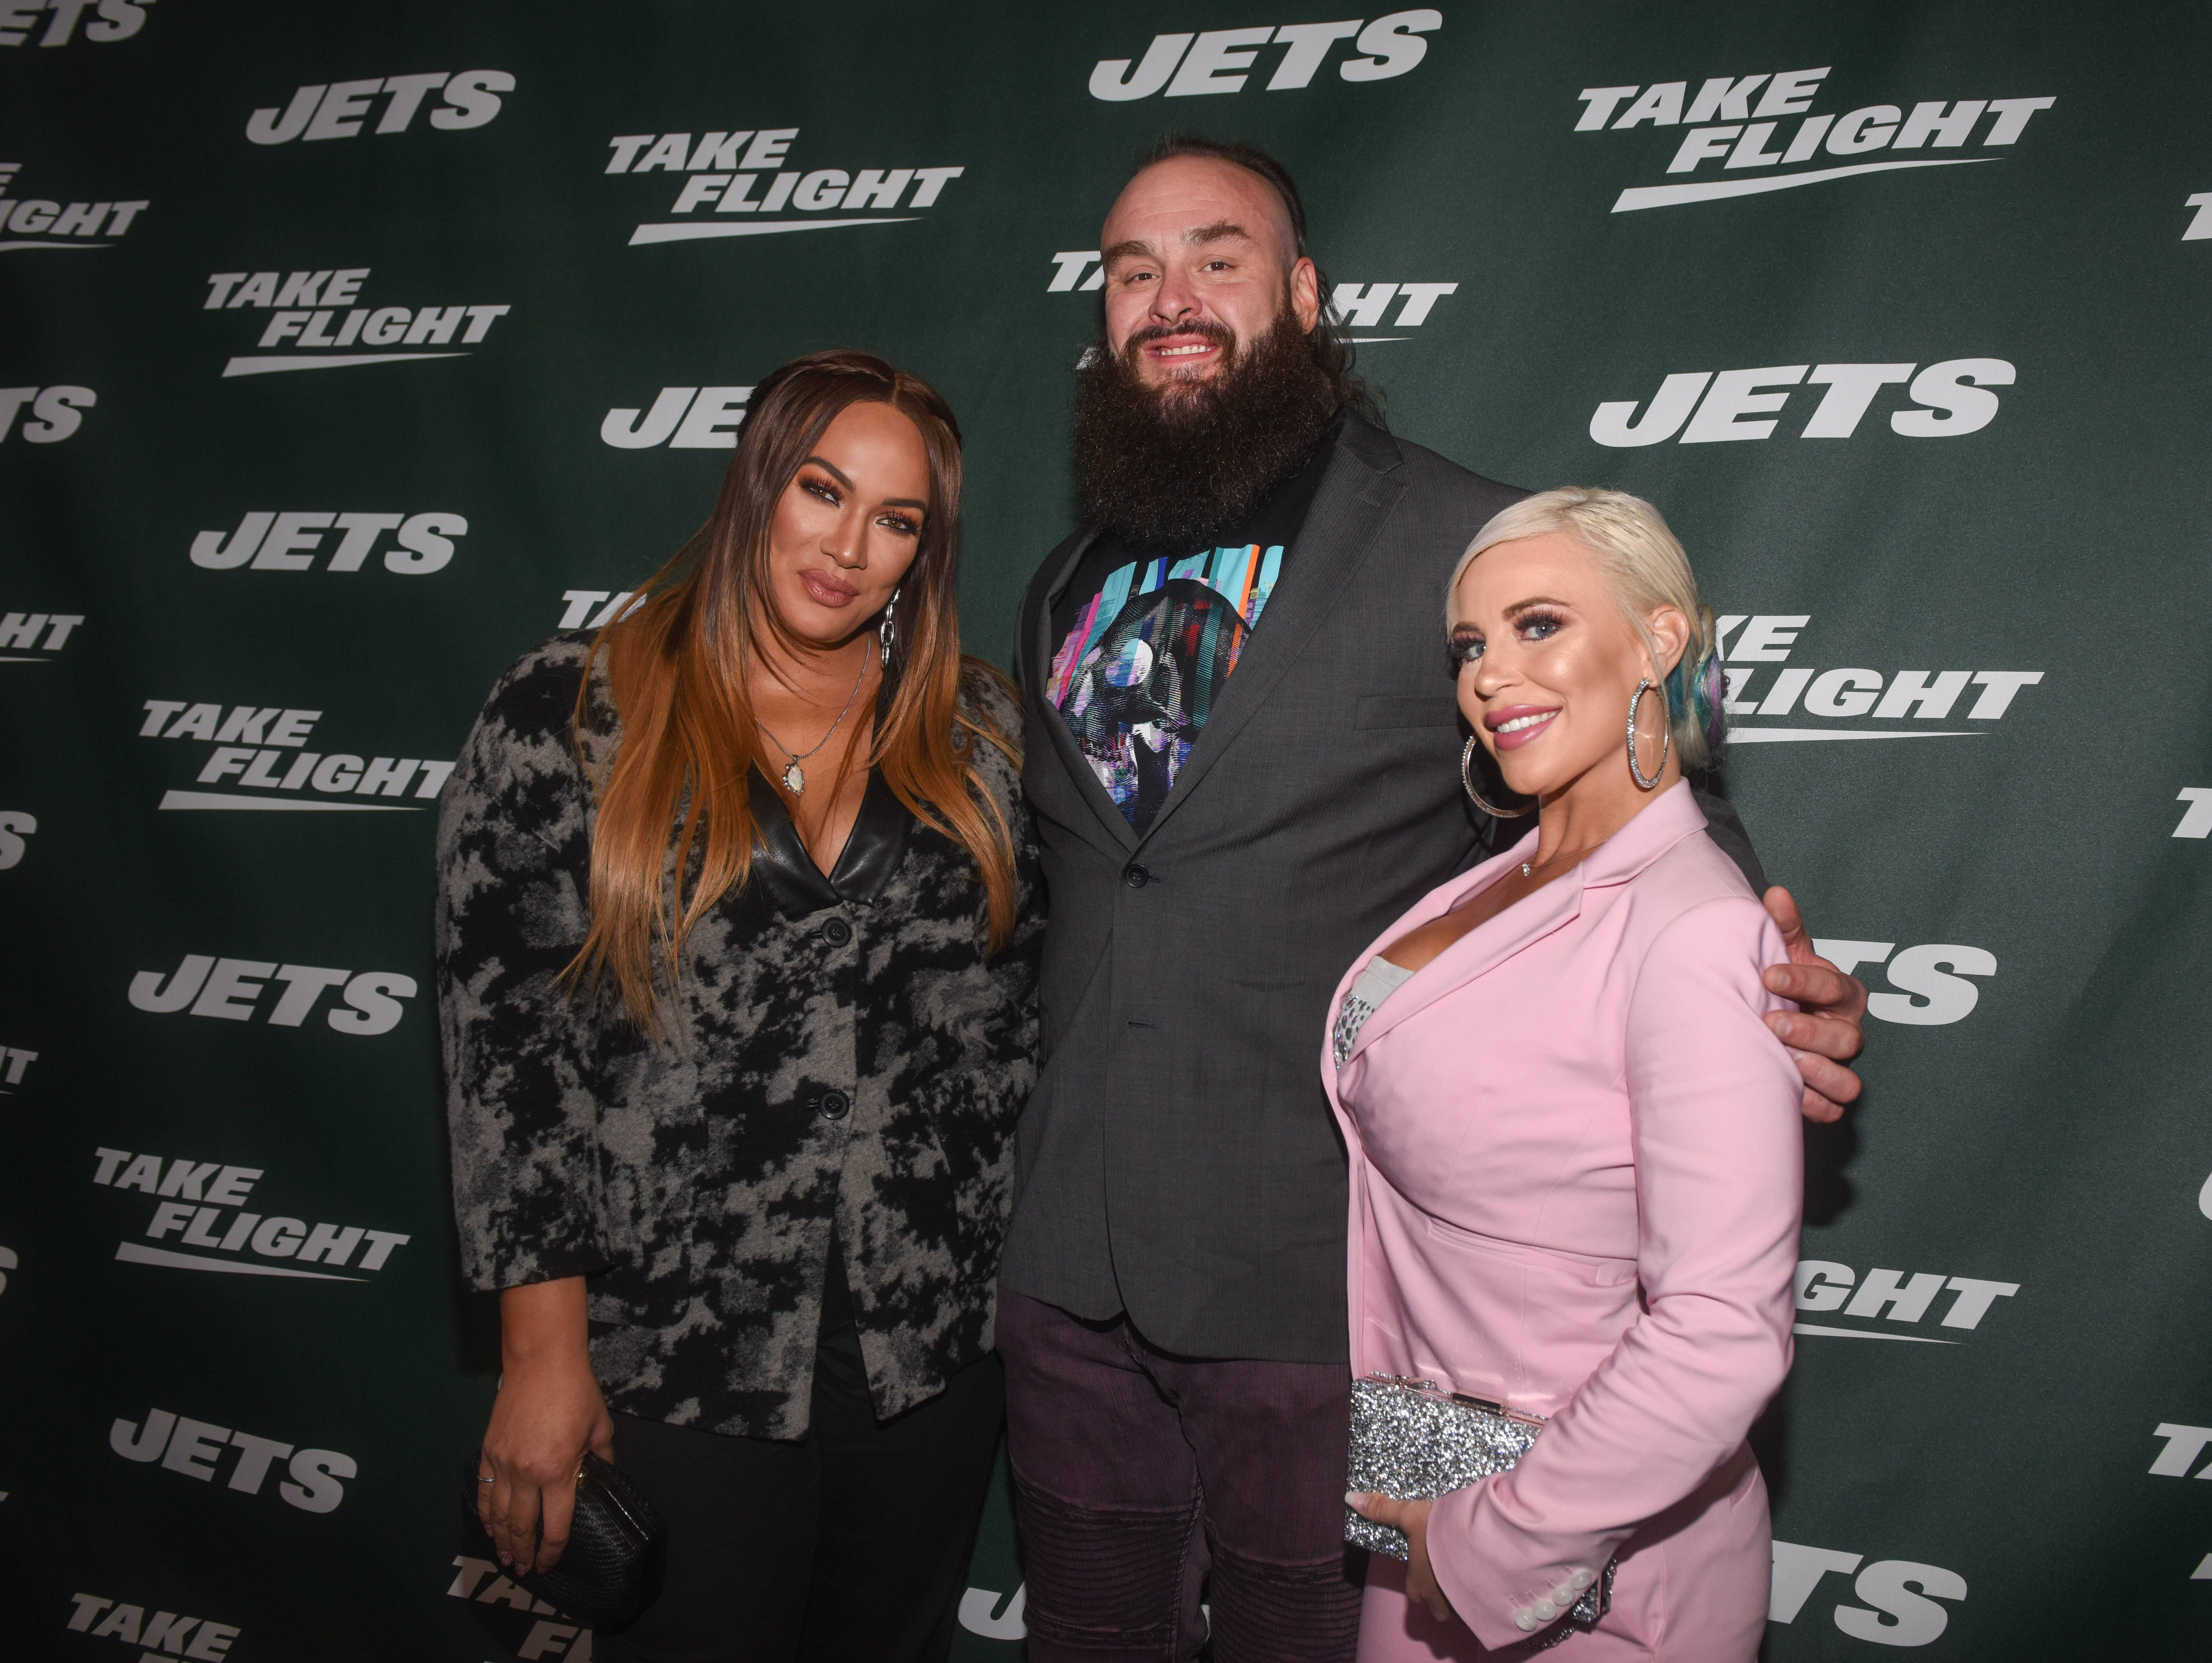 Nia Jax (WWE), Braun Strowman (WWE) and Mandy Rose (WWE). The NY Jets unveiled their new football uniforms with an event hosted by JB Smoove at Gotham Hall in New York. 04/05/2019